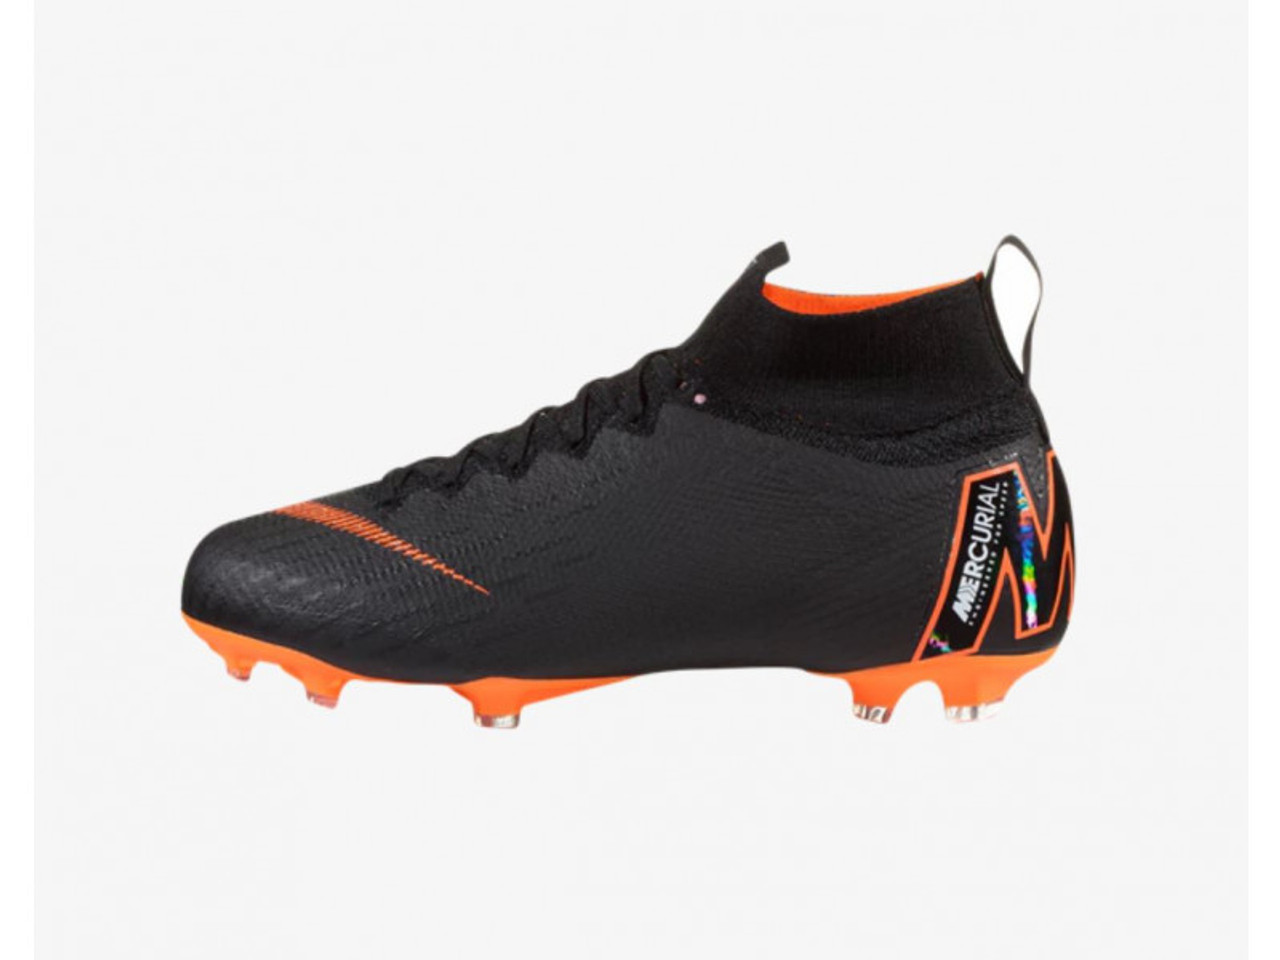 NIKE JR SUPERFLY 6 ELITE FG black total orange - Soccer Plus c8bab2093